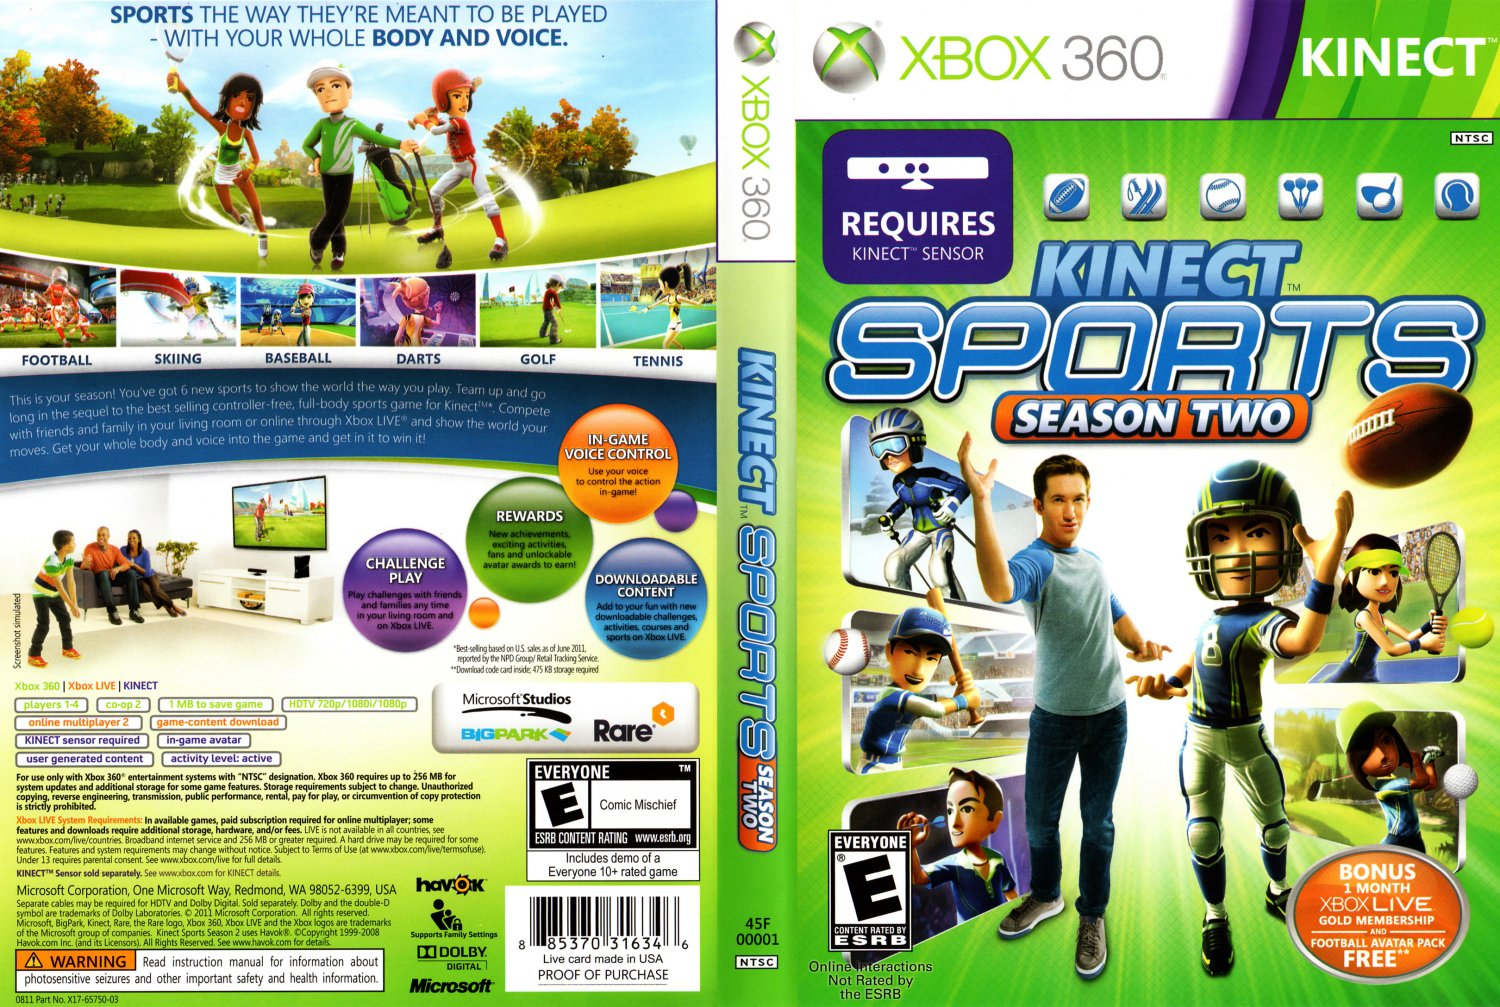 Kinect Sports Season 2 - XBOX 360 Game Covers - Kinect Sports Season 2 ...